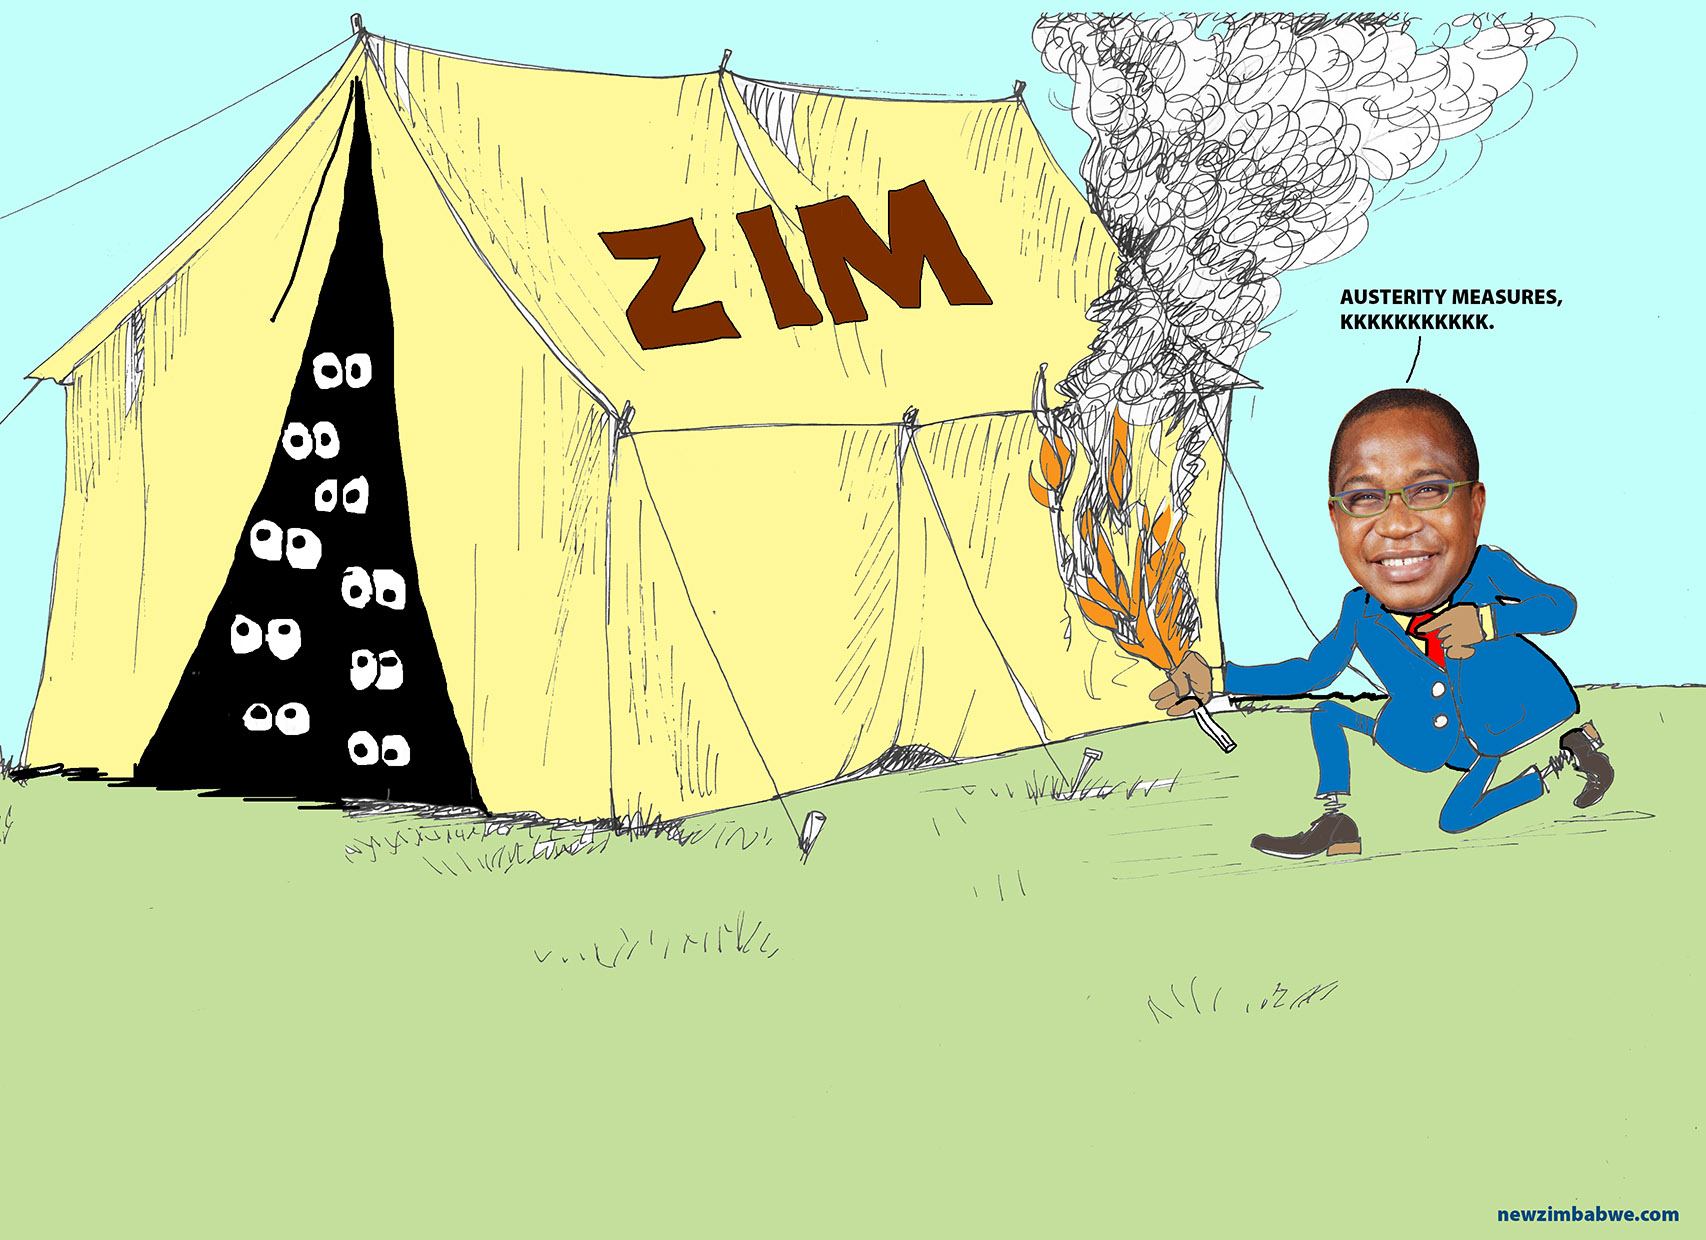 Prof Mthuli and austerity measures